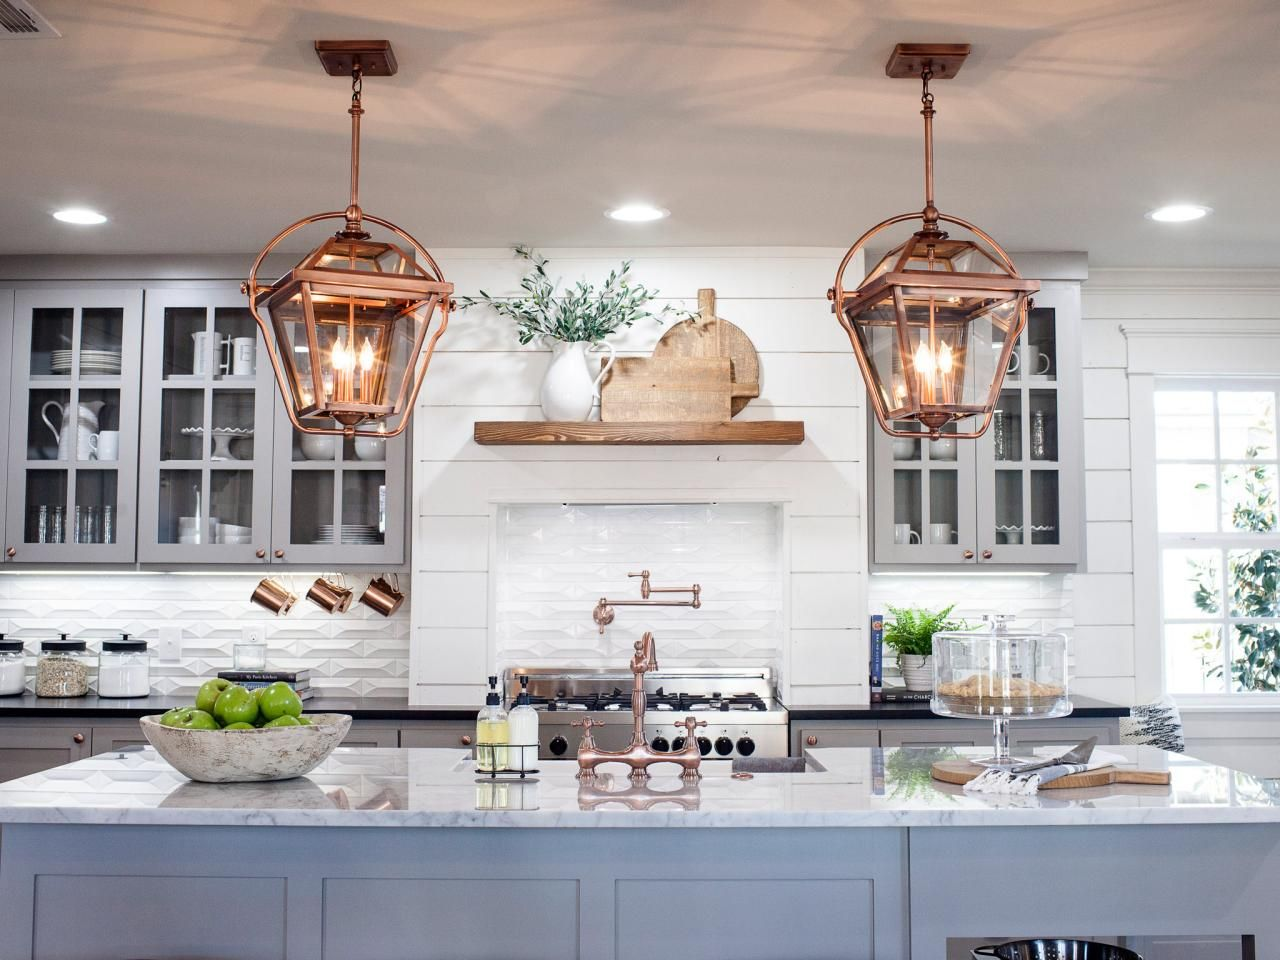 Hgtv fixer upper white kitchens - As Season 3 Of Hgtv S Fixer Upper Draws To Its Finale Chip And Joanna Gaines